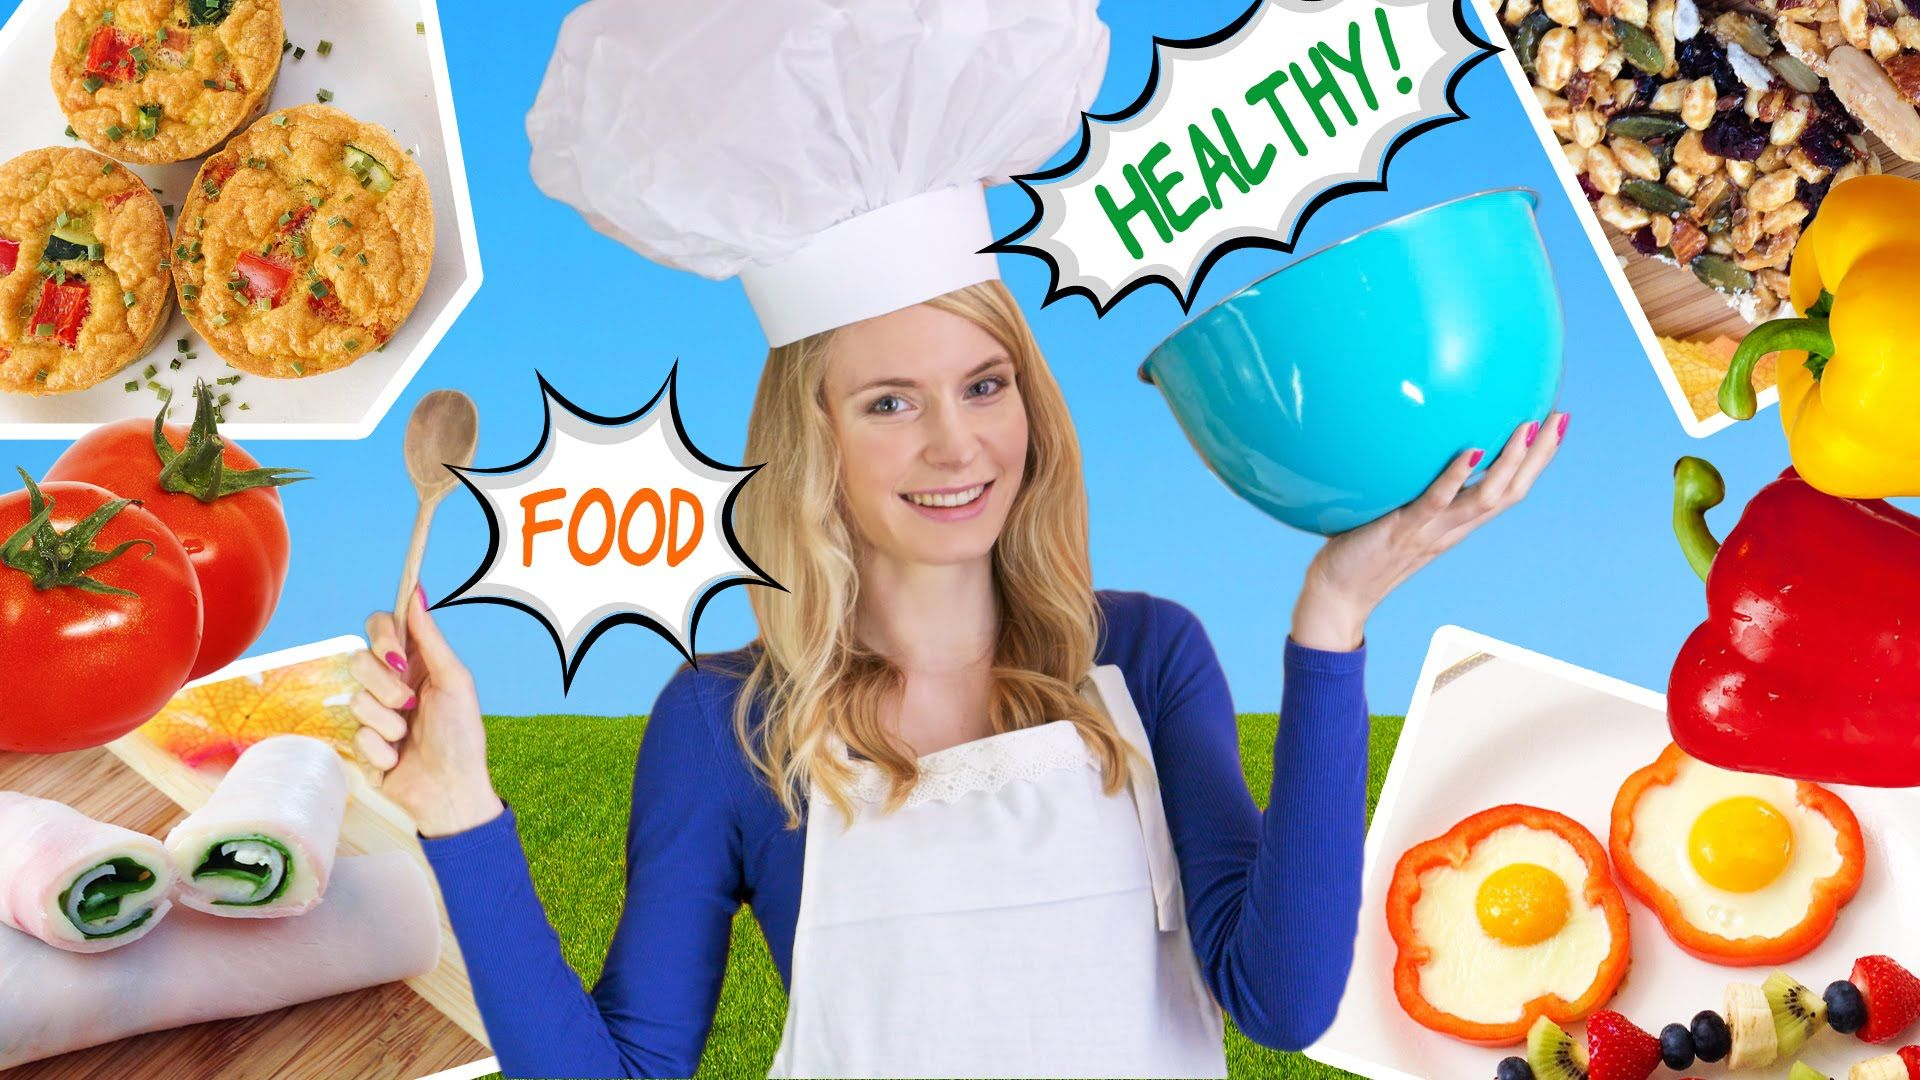 How to cook healthy food 10 breakfast ideas lunch ideas snacks the best diy projects diy ideas and tutorials sewing paper craft diy how to cook healthy food 10 breakfast ideas lunch ideas snacks for school solutioingenieria Image collections